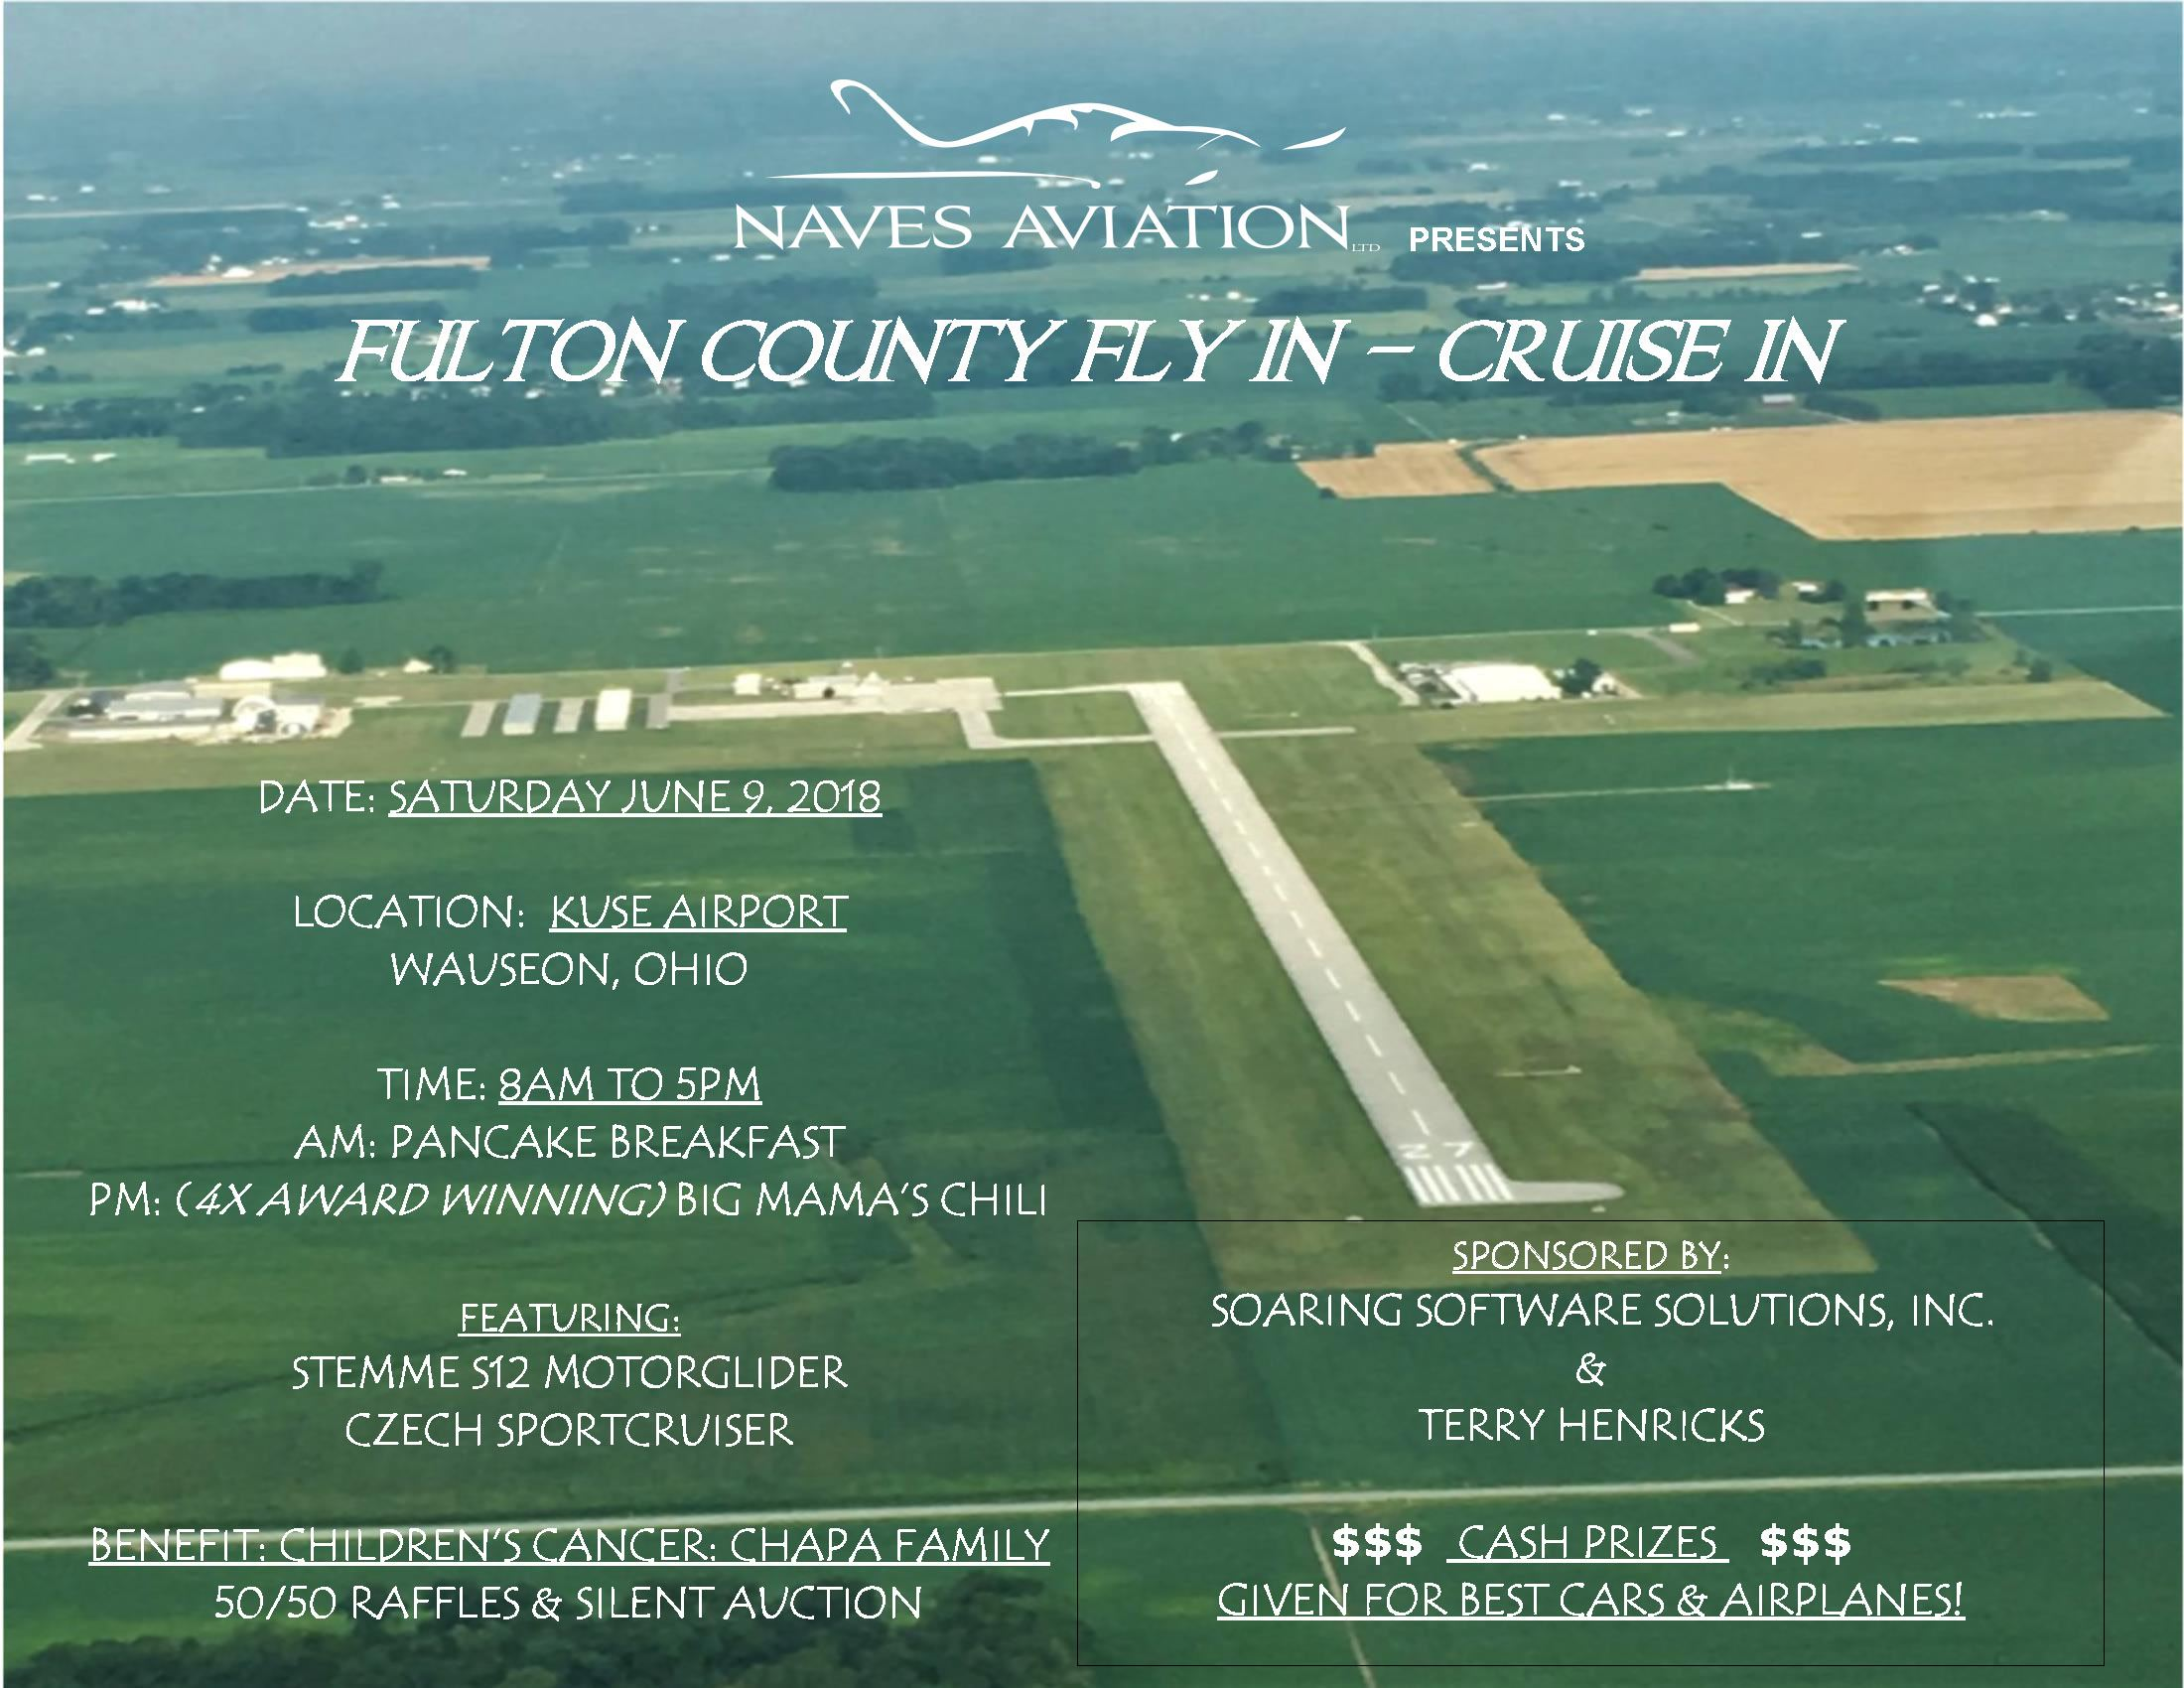 Fulton County Airport Fly-In June 9th